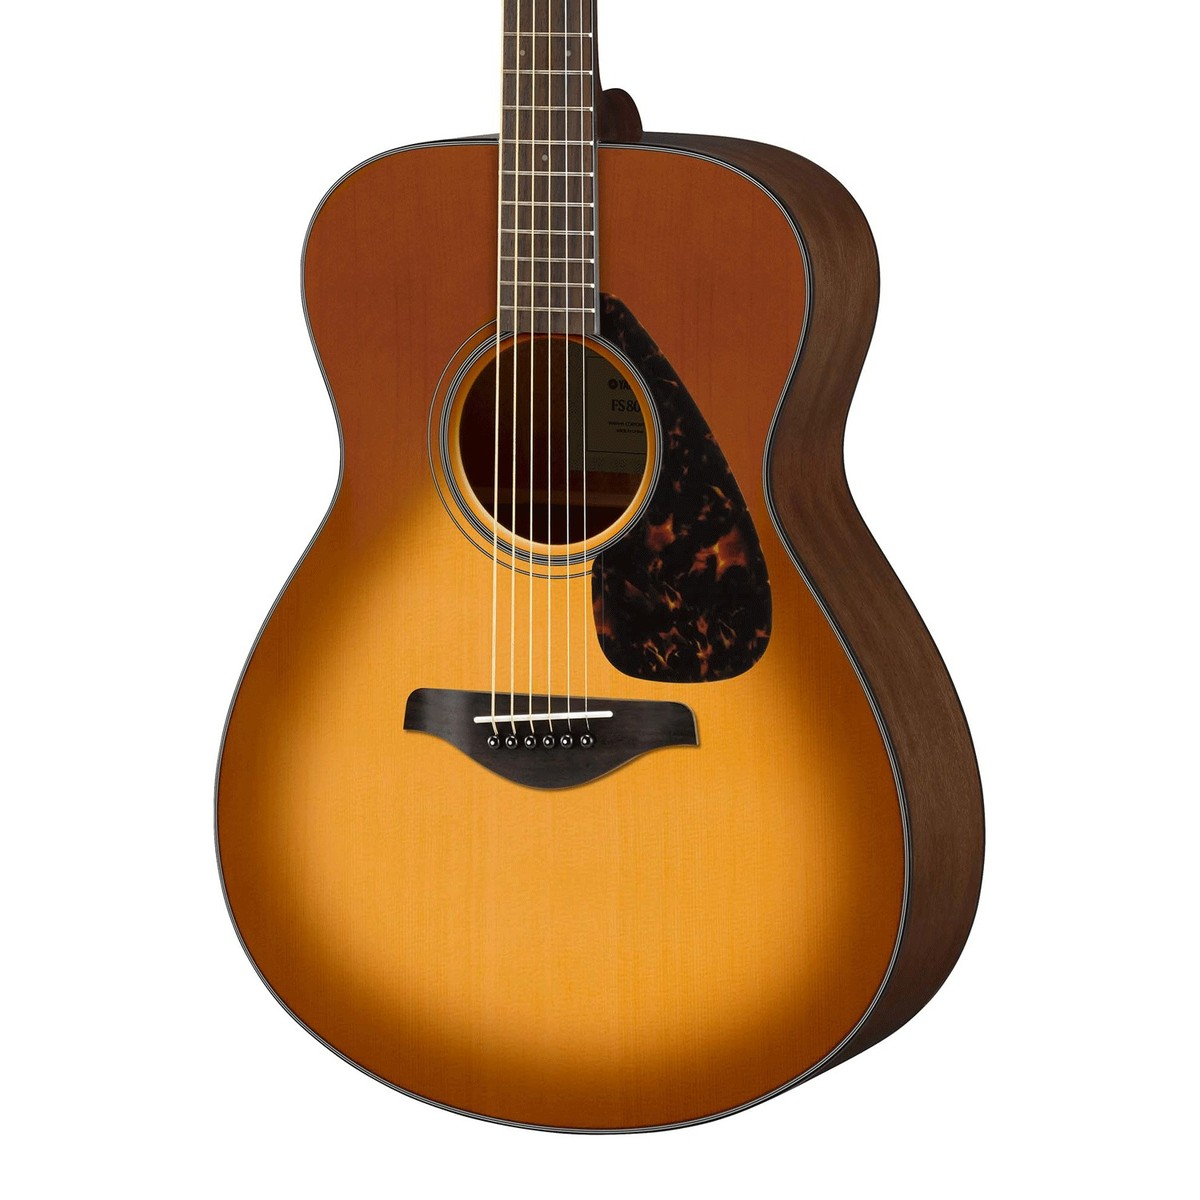 Yamaha fs800 acoustic guitar sandburst at for Yamaha acoustic bass guitar